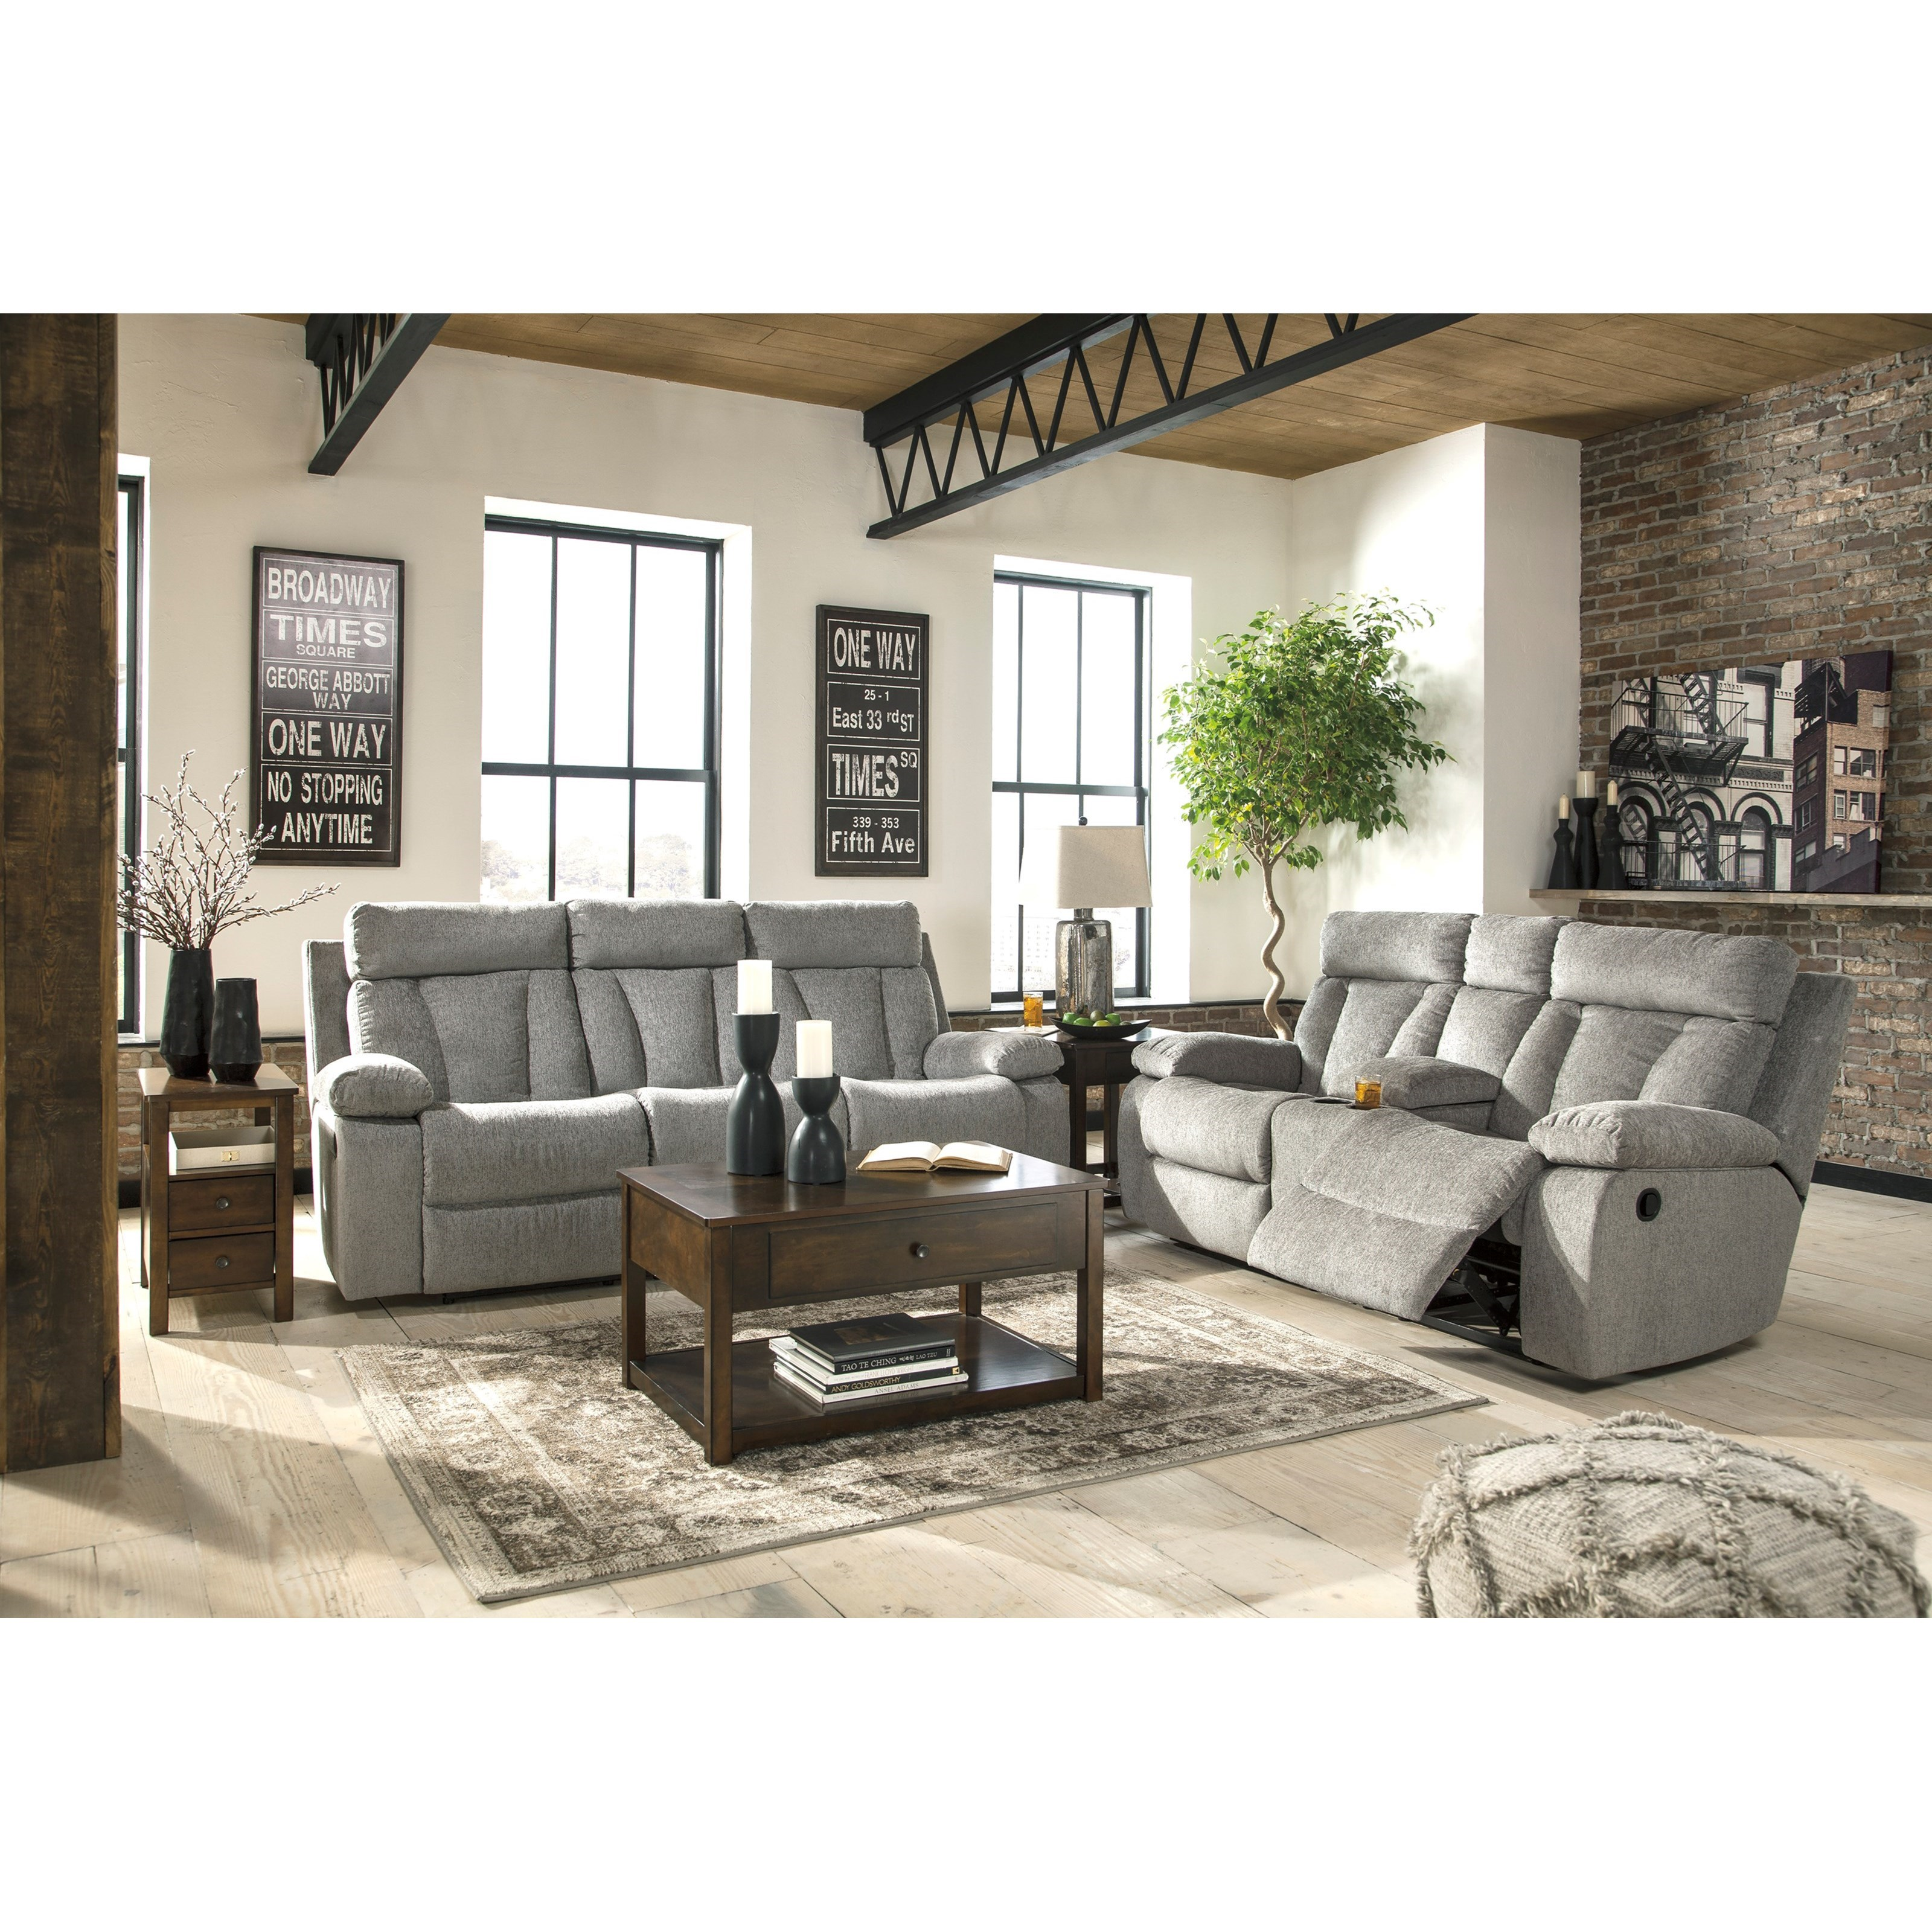 Signature Design By Ashley Mitchiner Reclining Living Room Group Royal Furniture Reclining